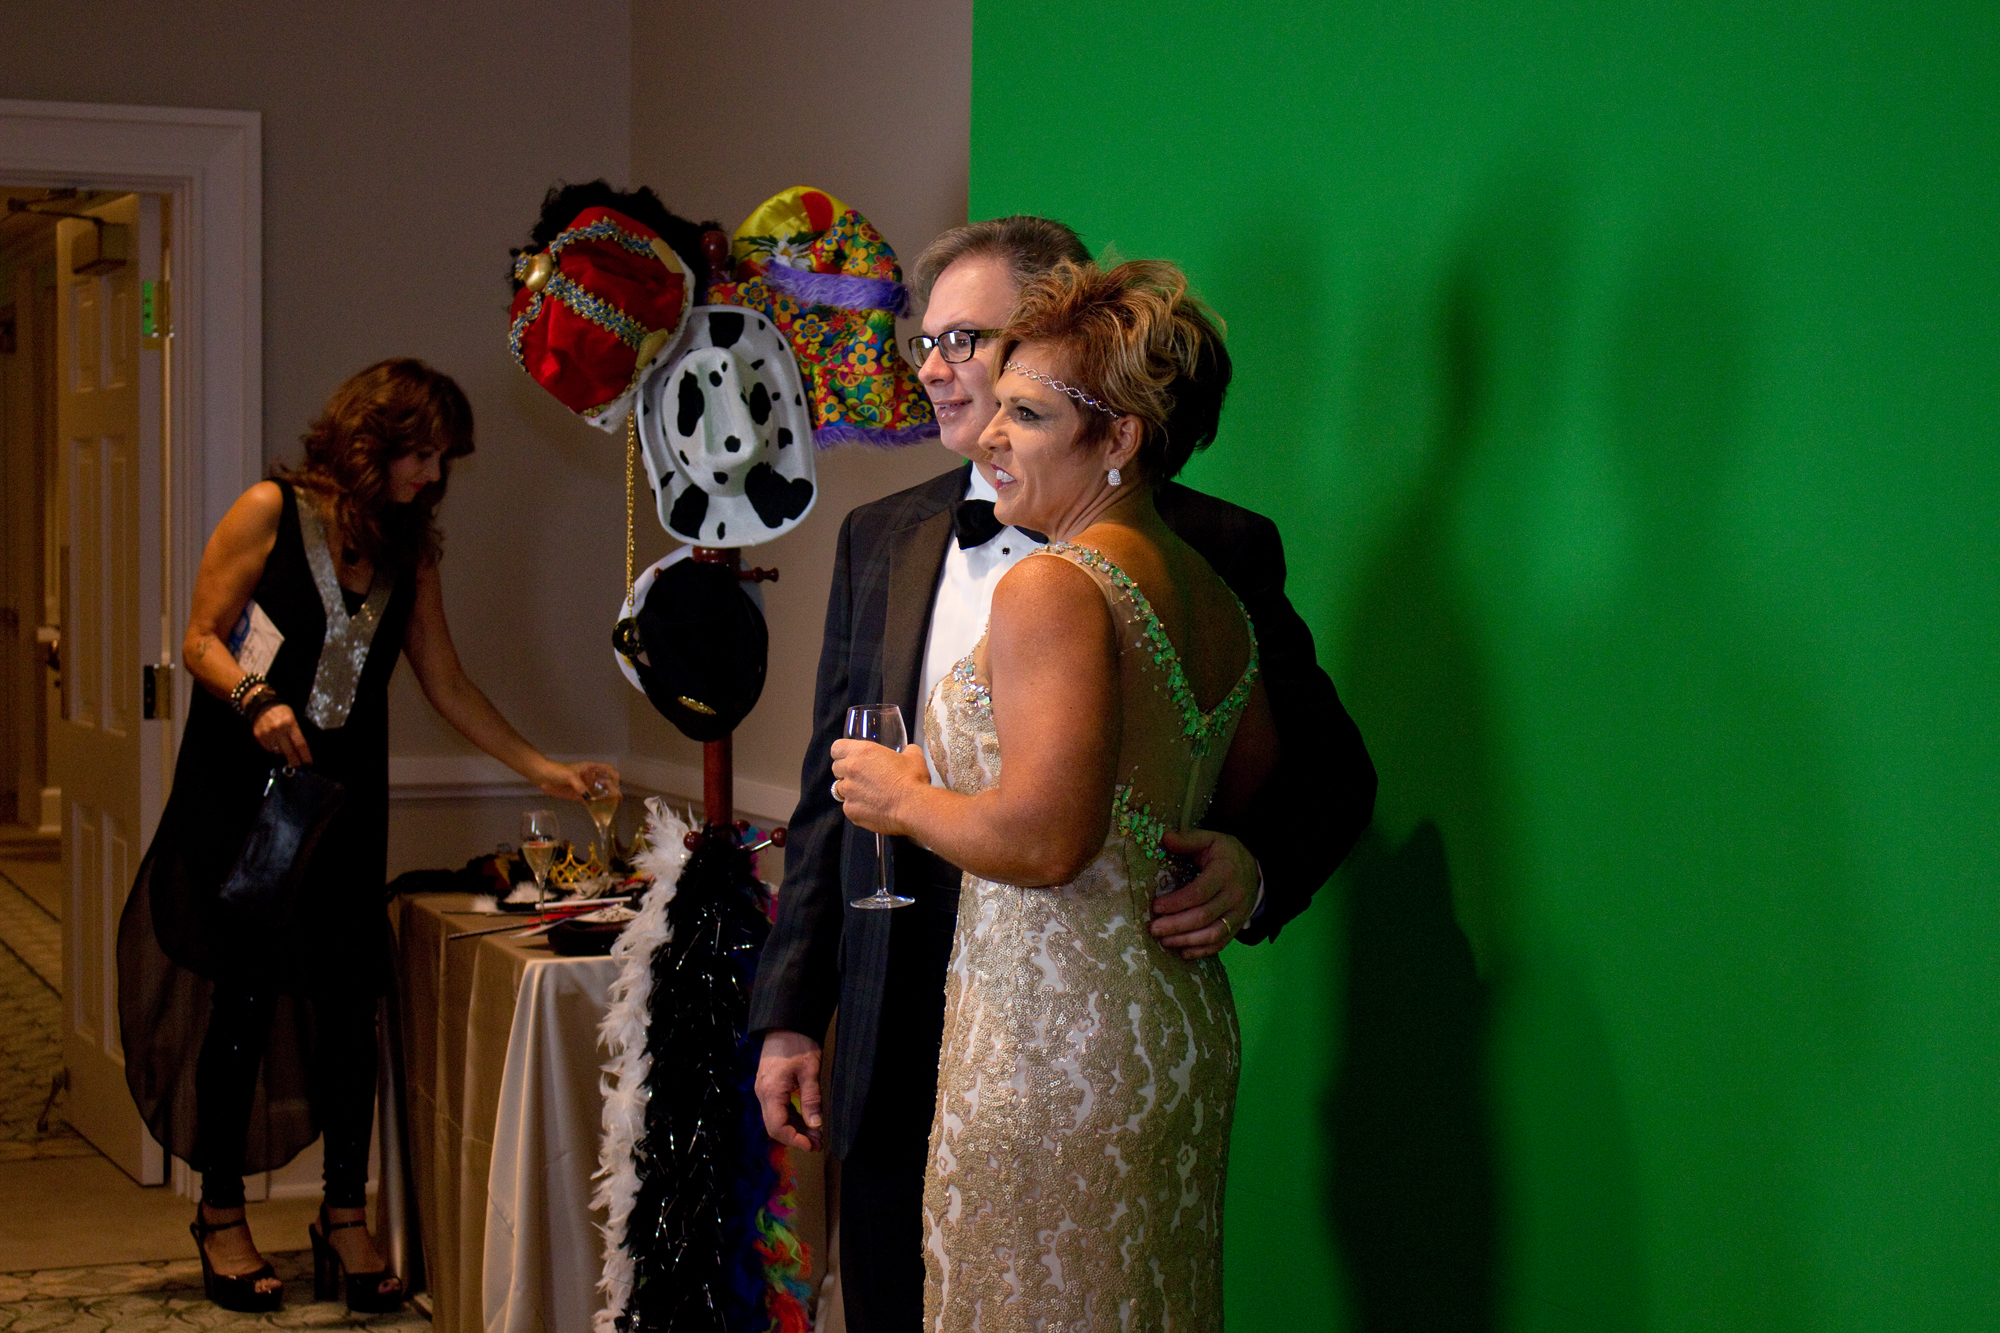 Dowm and Jim Hawley have fun at the photo booth.